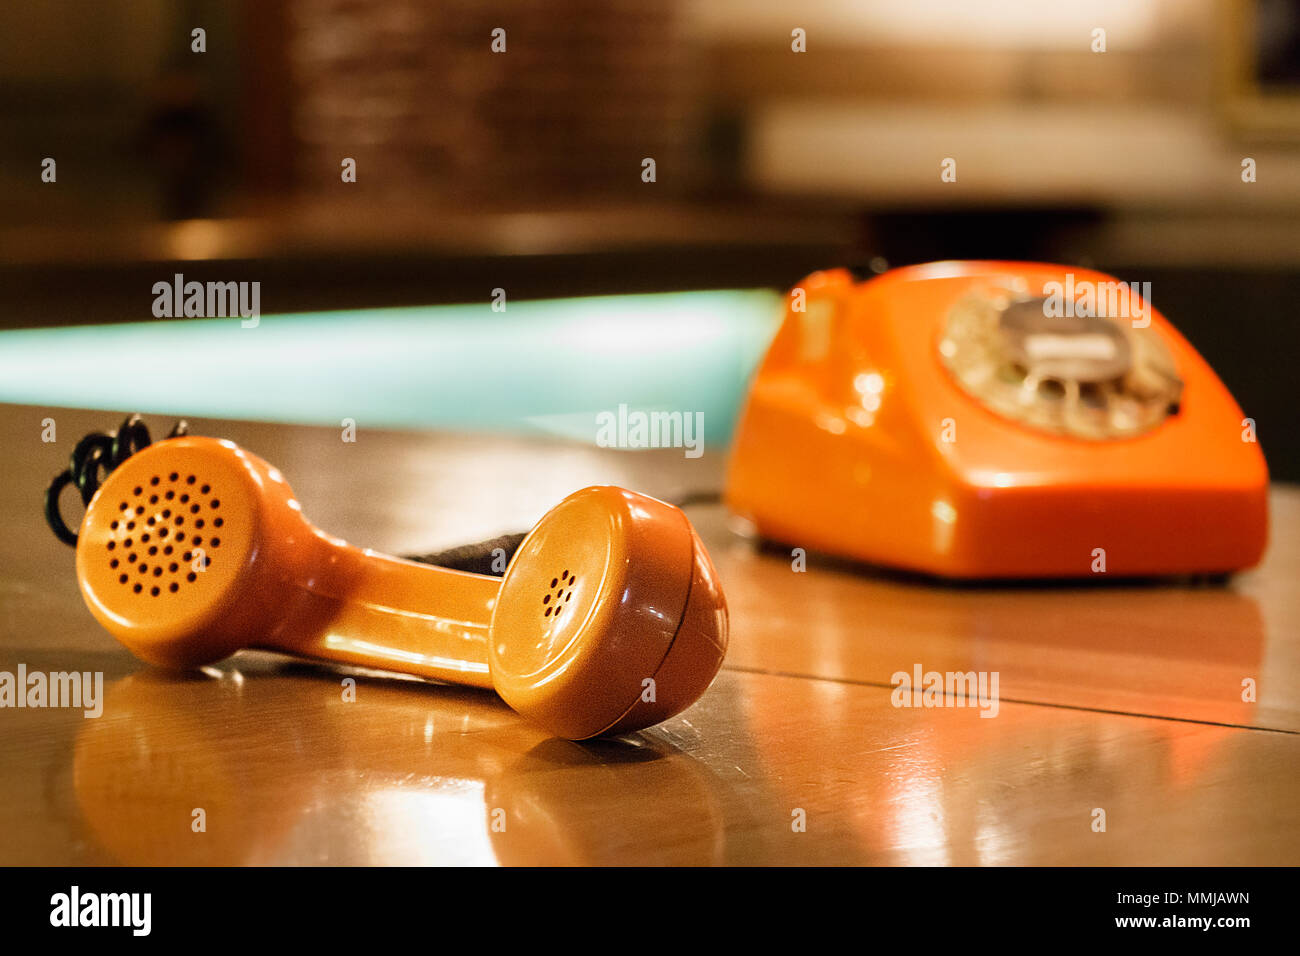 Handset of an orange telephone with dial placed on a wooden table inside a bar. - Stock Image